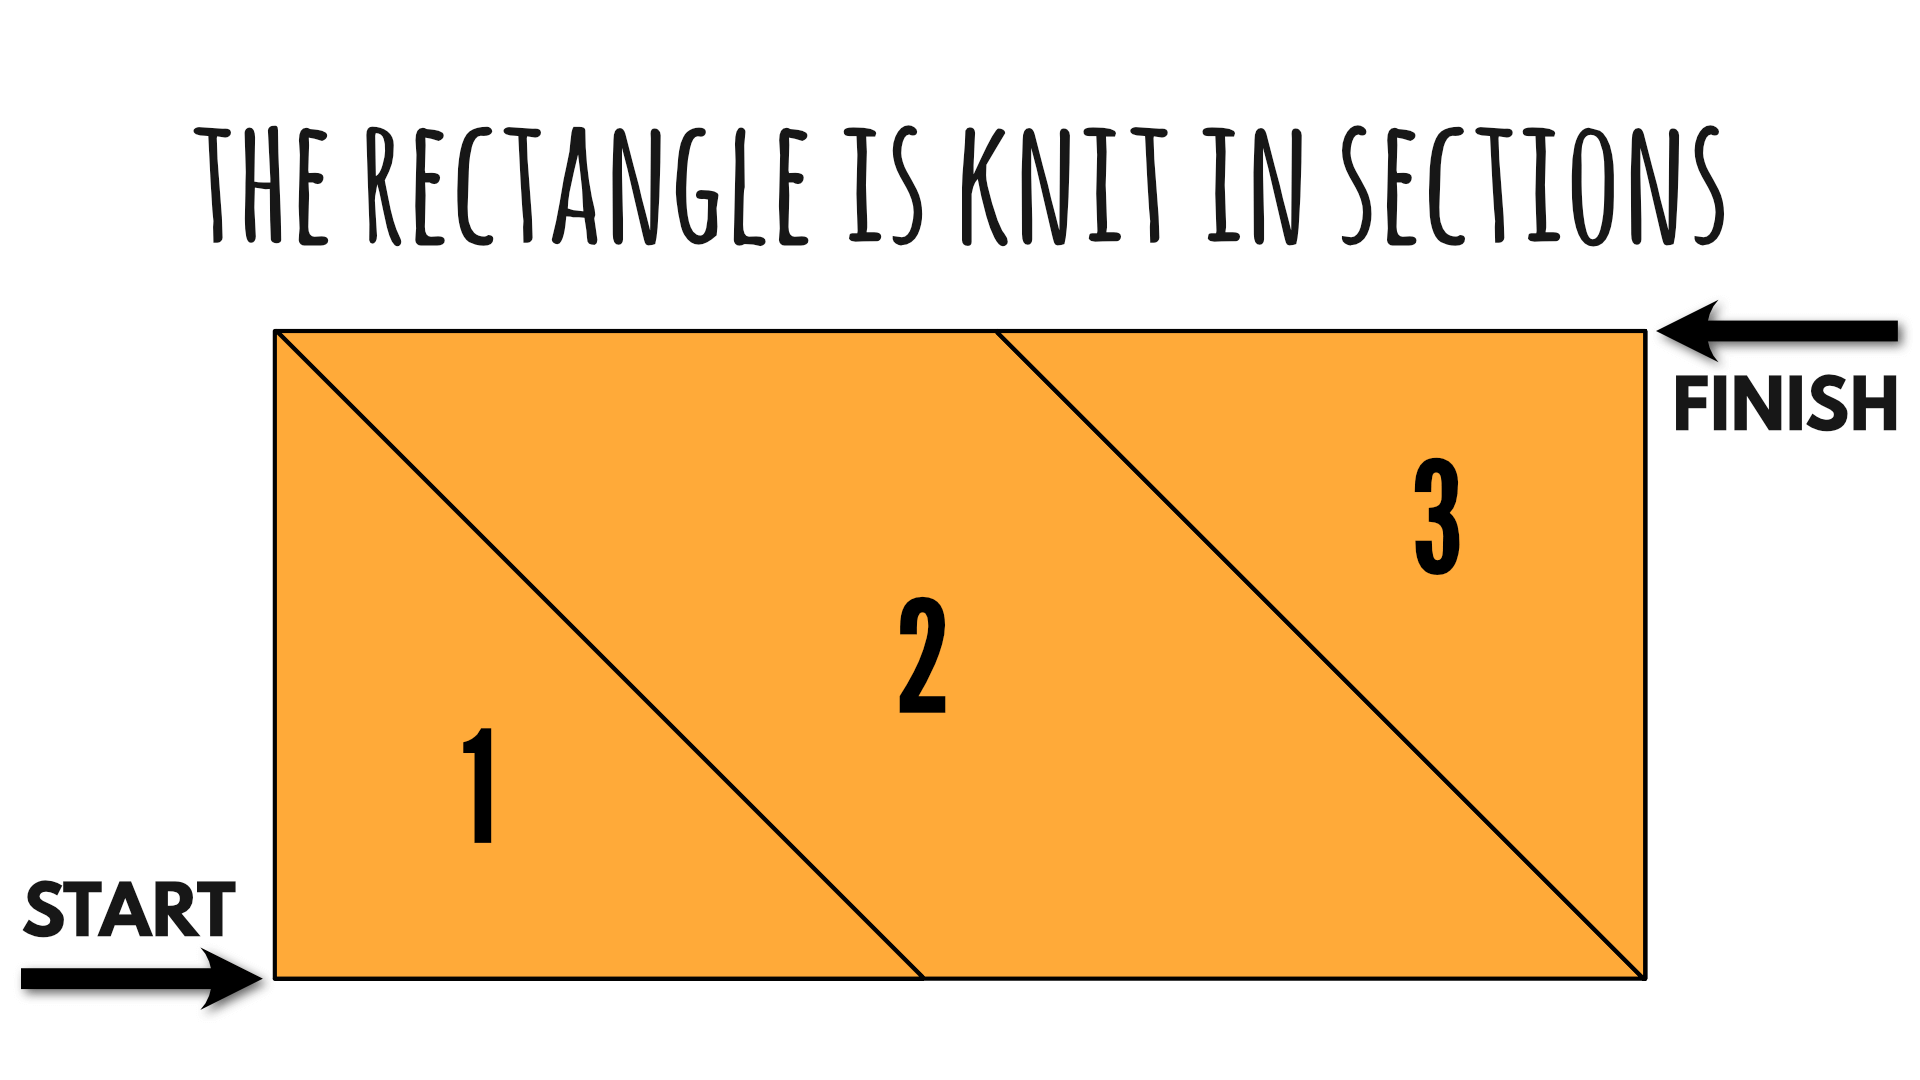 A rectangle knit from corner to corner is worked in sections.